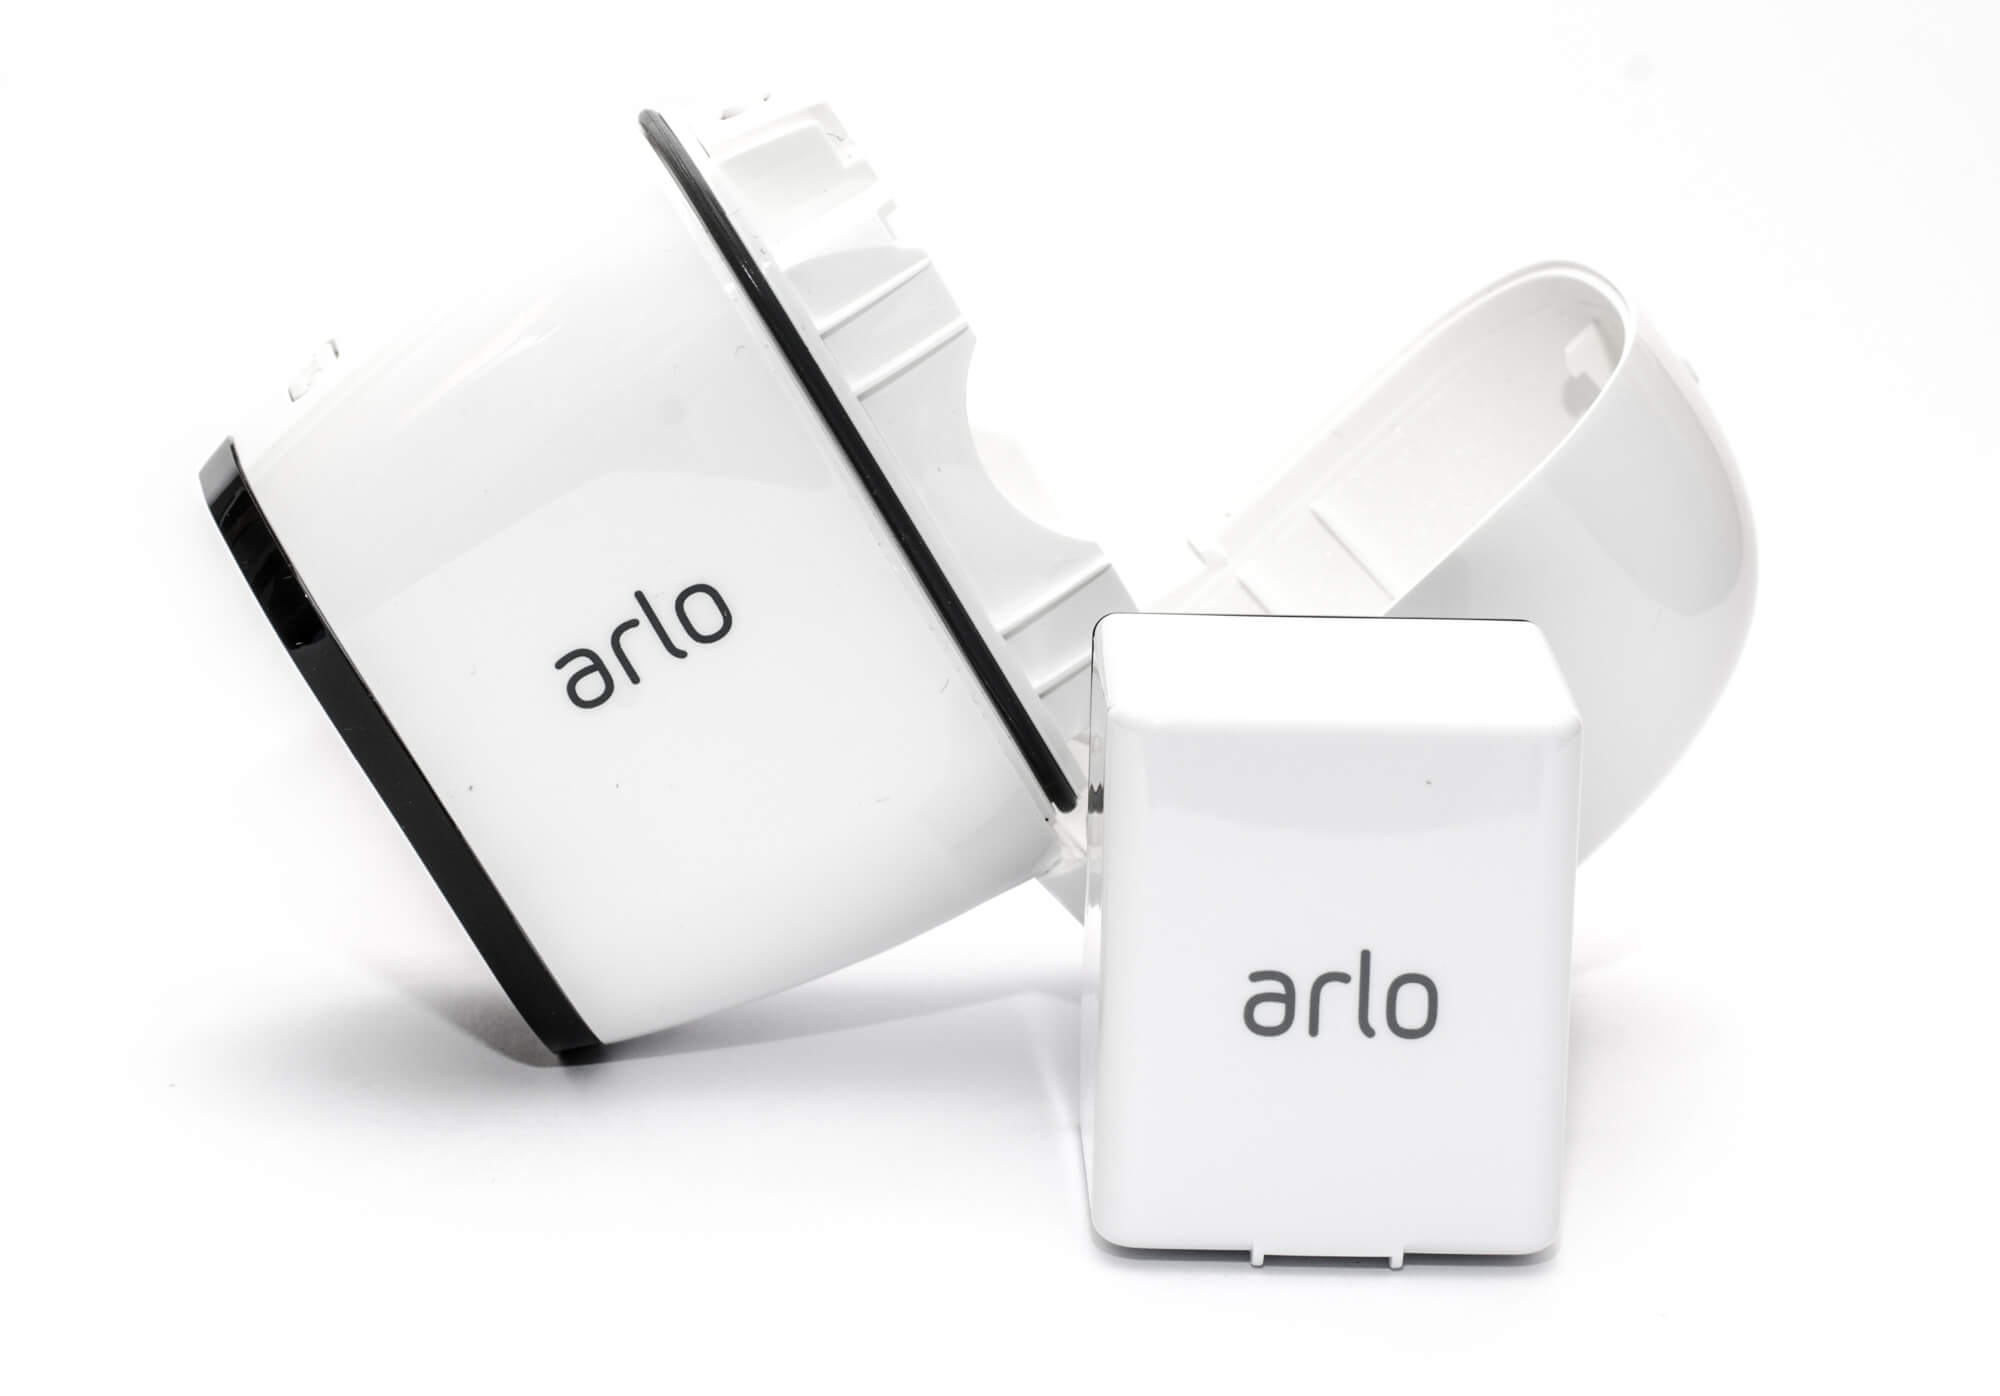 netgear arlo pro im test smart home one. Black Bedroom Furniture Sets. Home Design Ideas